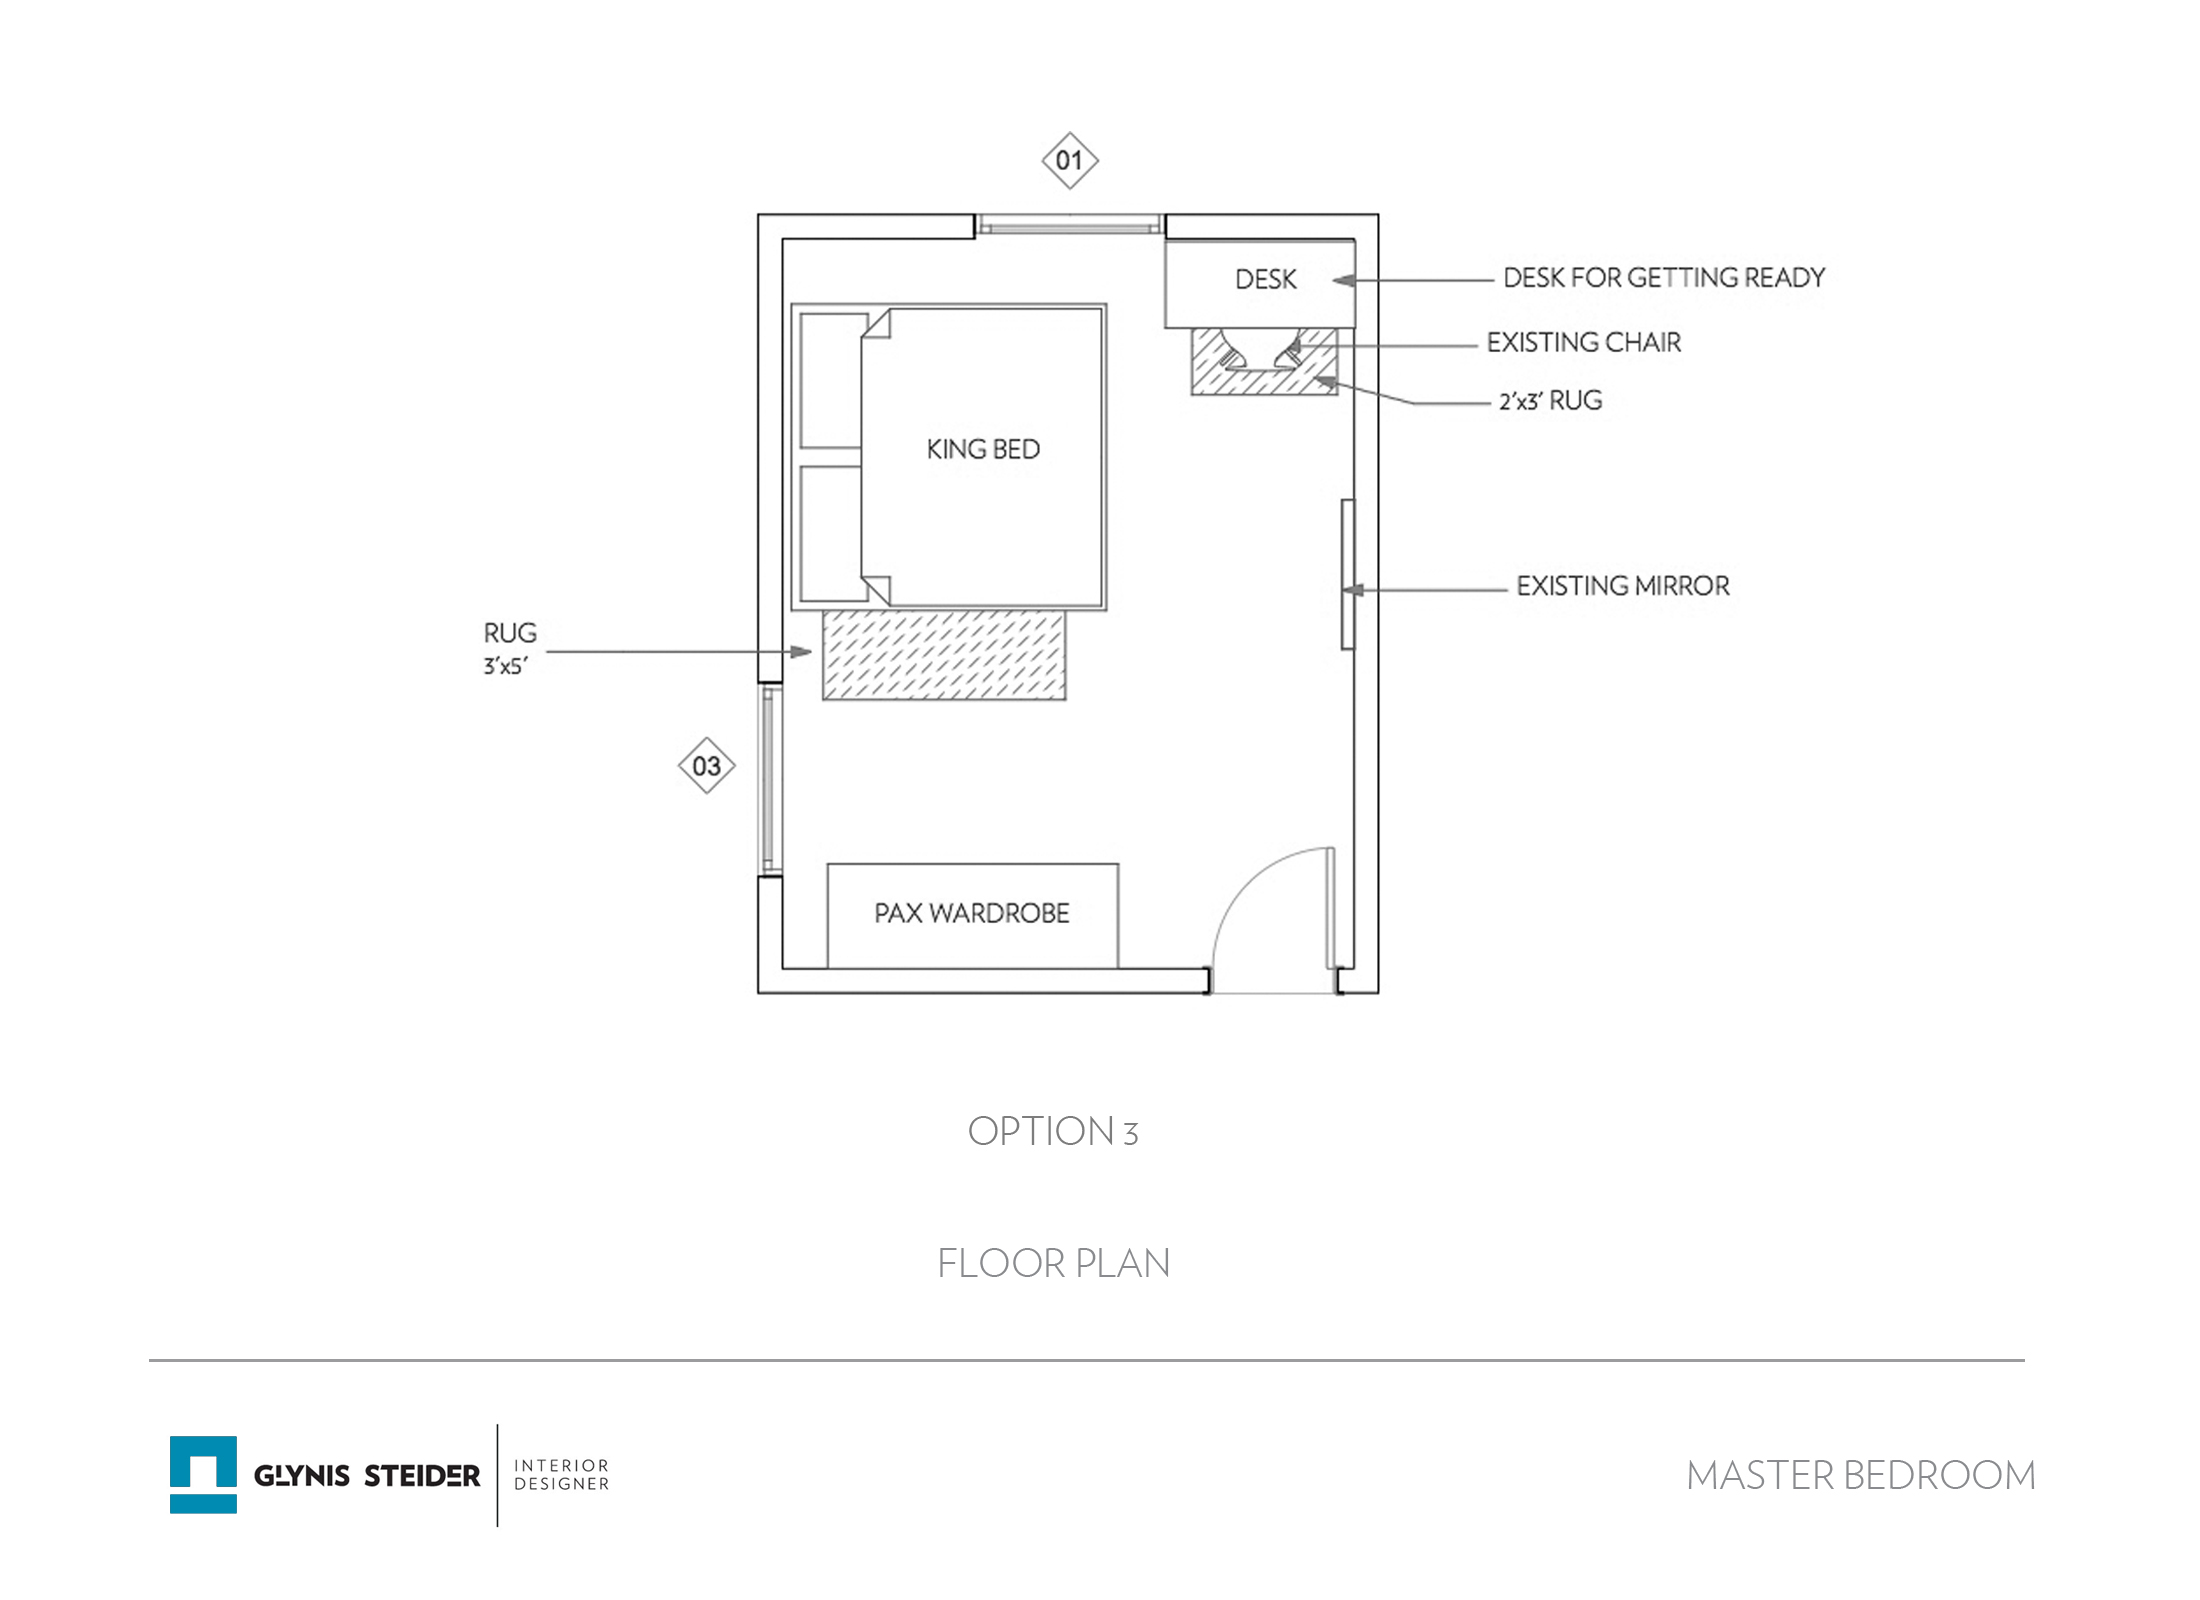 floor plan_REV2.jpg